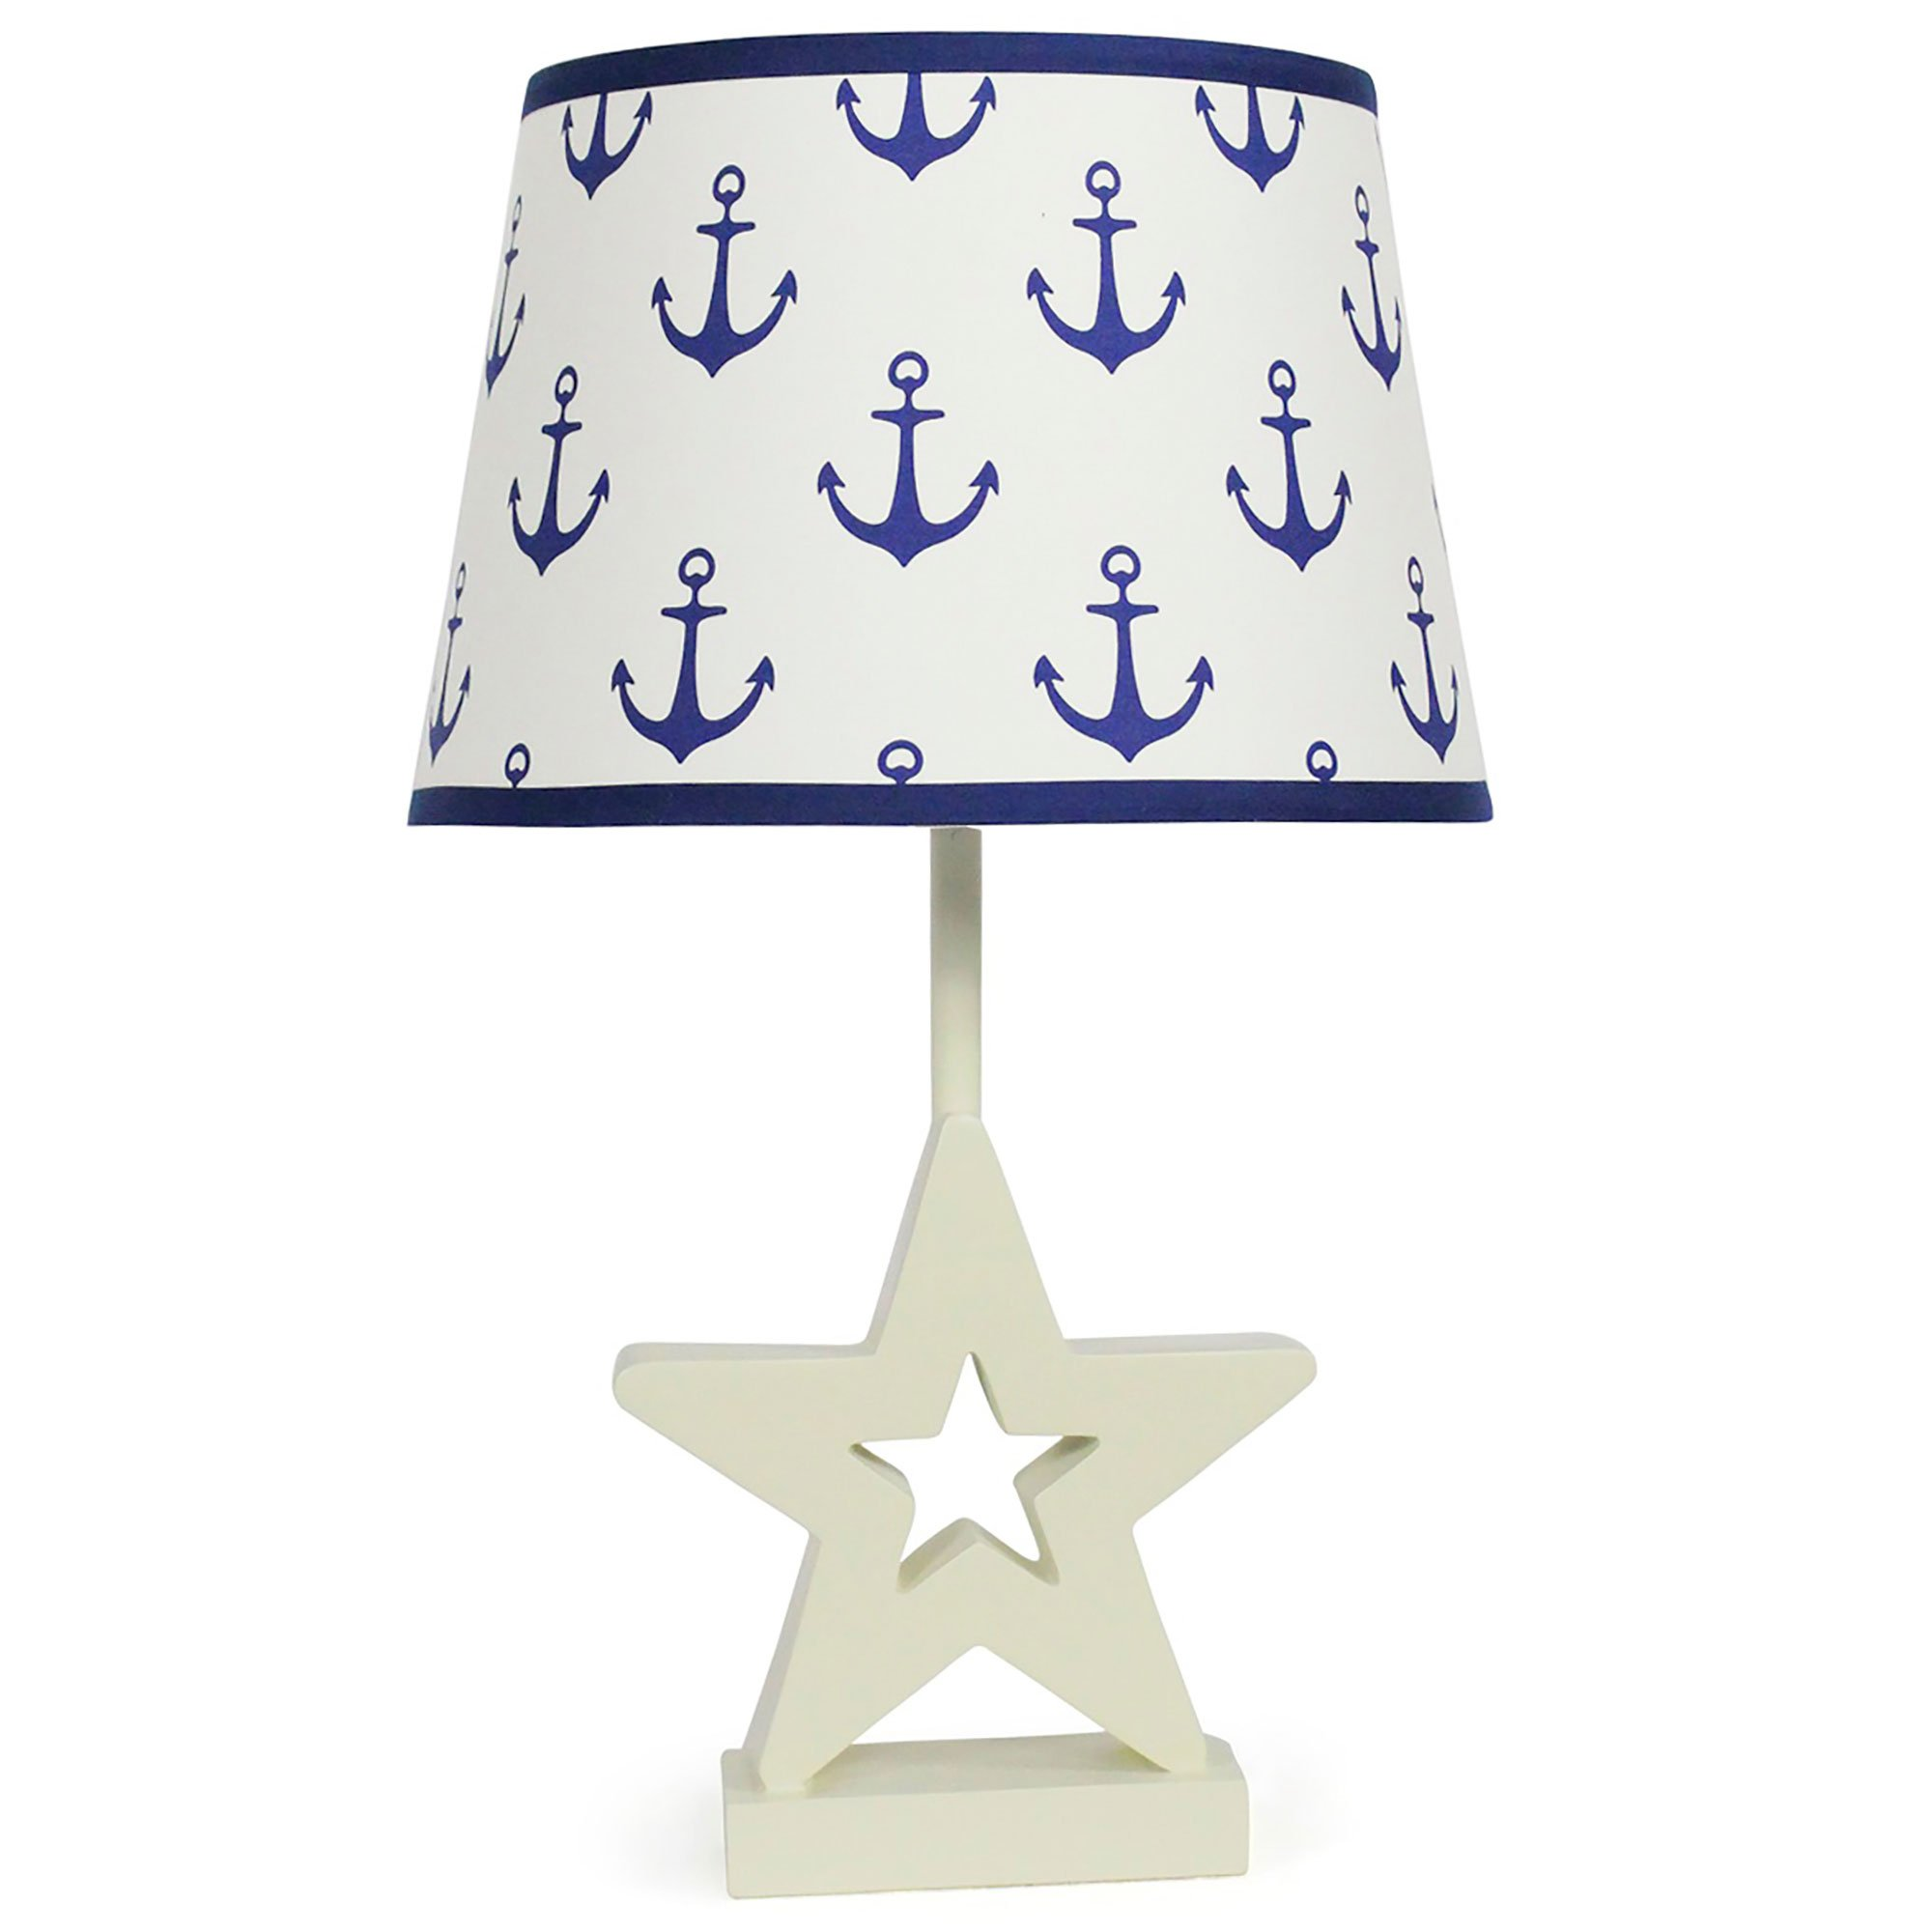 Navy Blue Anchor Nursery Lamp Shade with White Star Base, CFL Bulb Included by The Peanut Shell